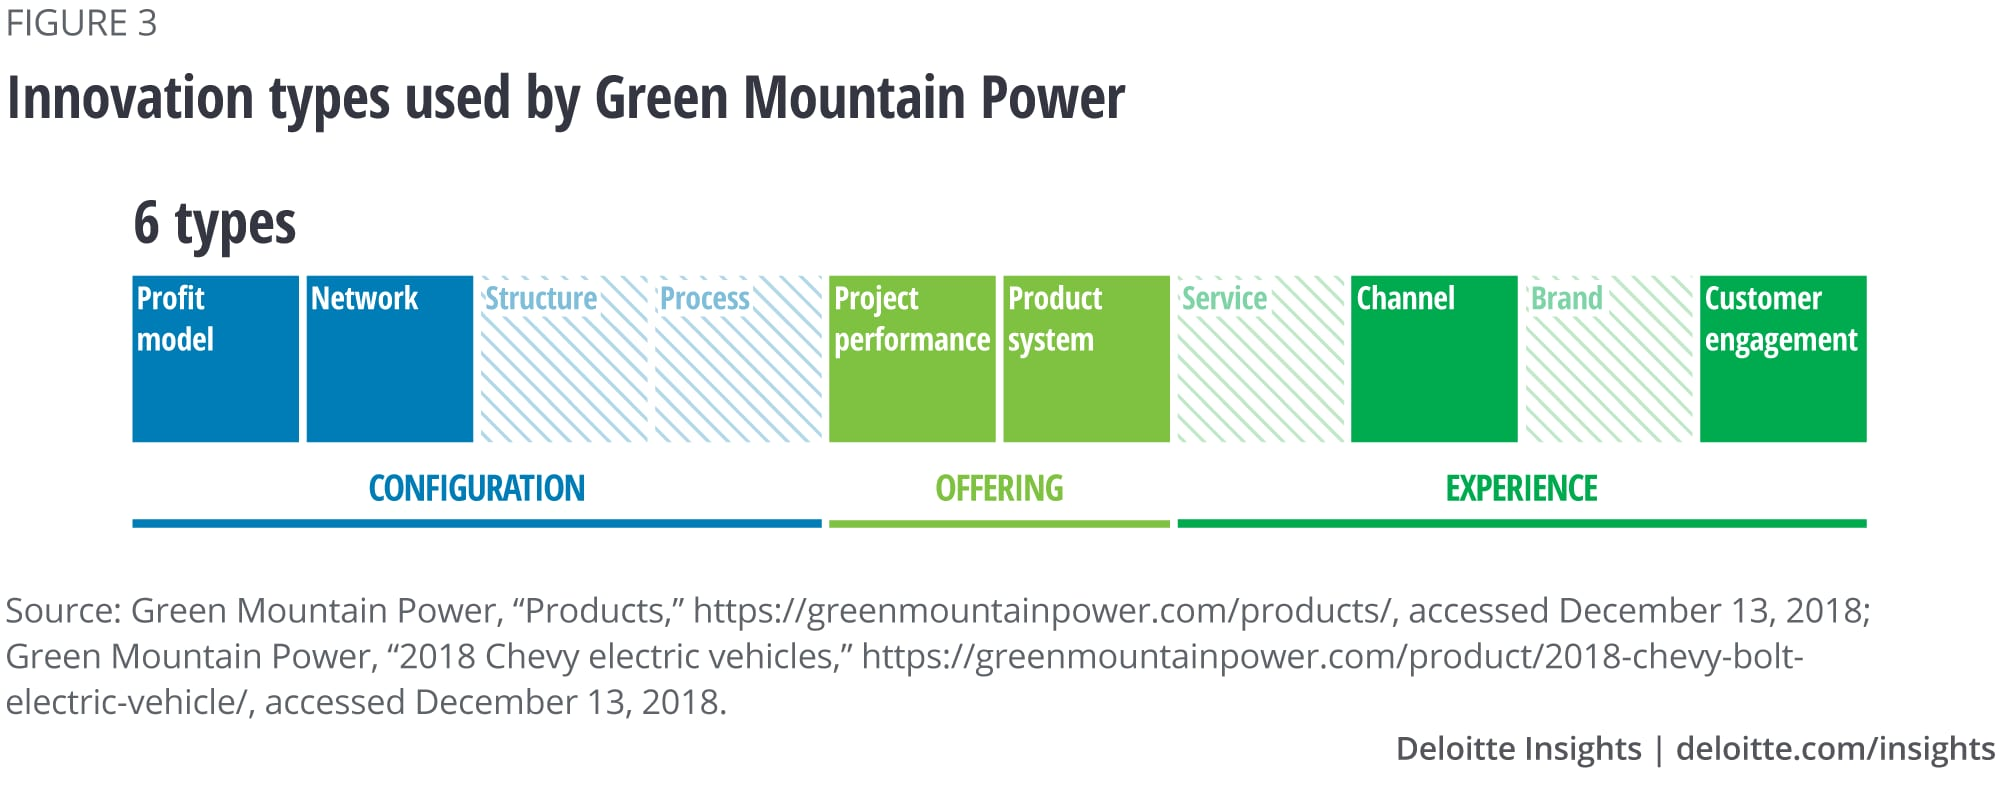 Innovation types used by Green Mountain Power